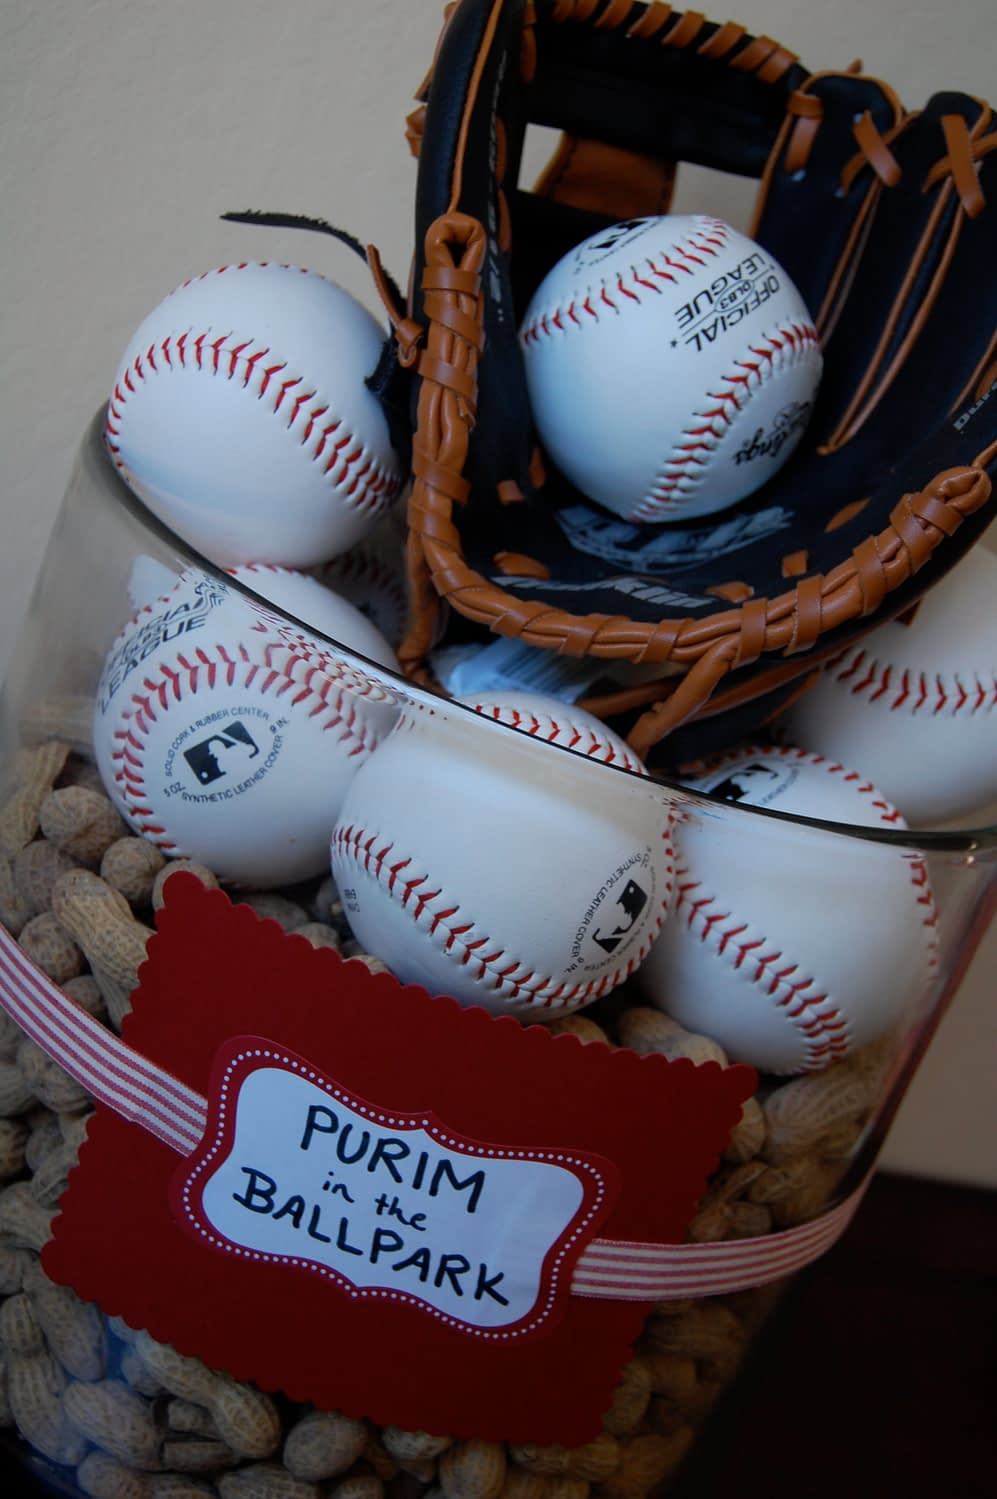 An easy Buffet Table center piece...A large glass cylinder vase, punch bowl, filled with peanuts. Then add baseballs, a baseball glove and another ball! You can either purchase baseballs from sports stores (if you know your boys will enjoy future use out of them!) or you can order fake cheaper ones from bulk stores like oriental trading. Even the squishy stress ball ones would work! I Wrapped a ribbon around it with a paper card in red and a label...keeping with my color scheme. You can add a box under the table linen to give it even more height if you wish. (If you are worried about Peanut allergy, try using popcorn or only baseballs).